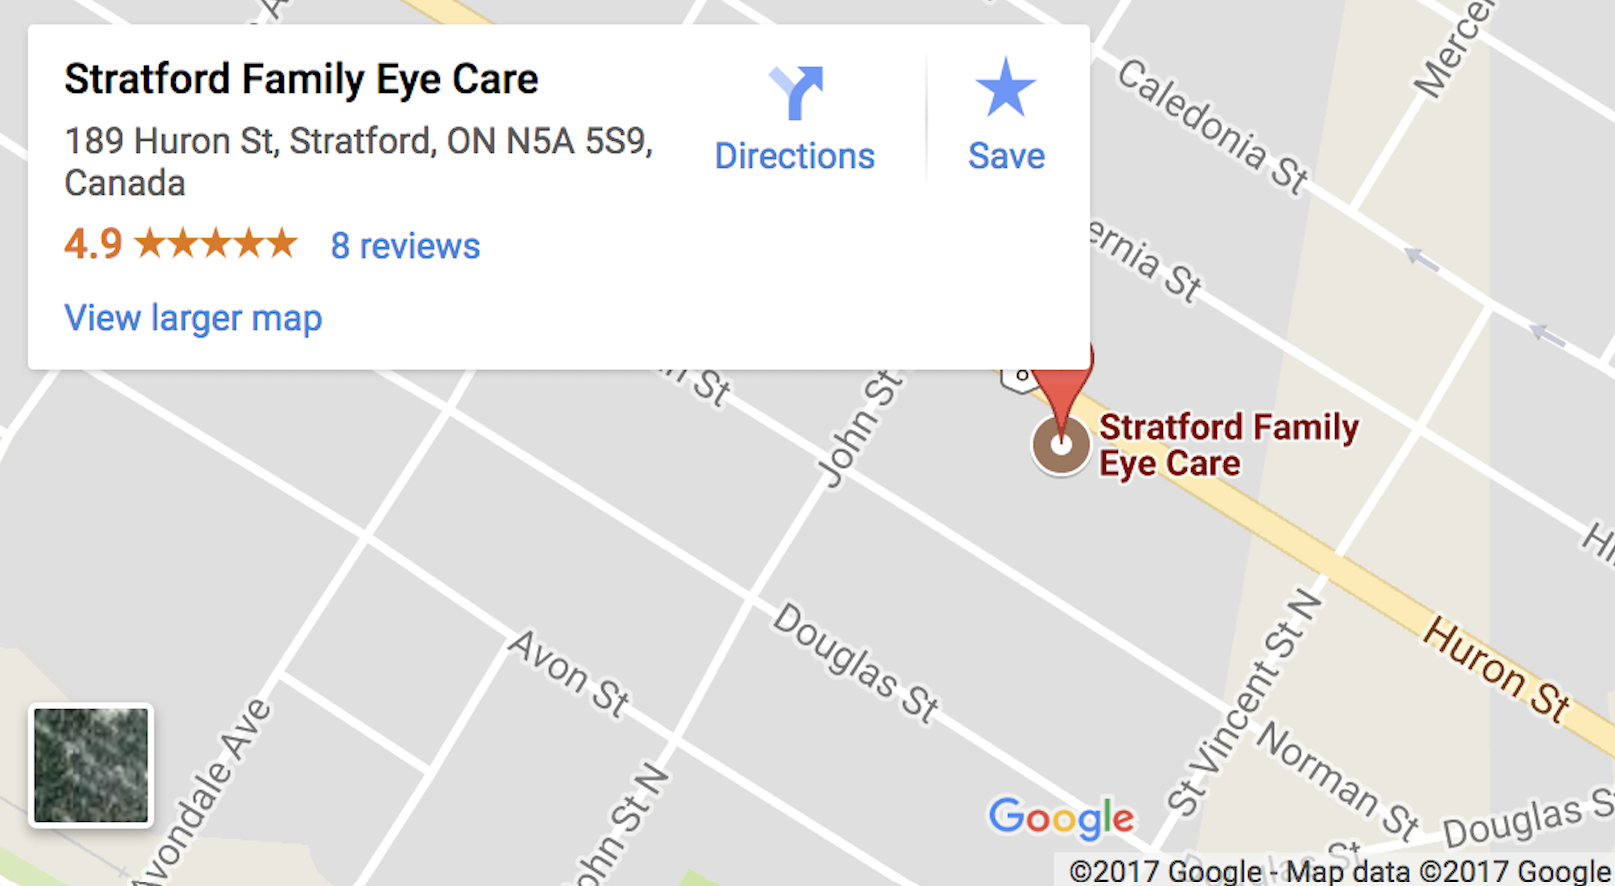 Google map of Stratford Family Eye Care